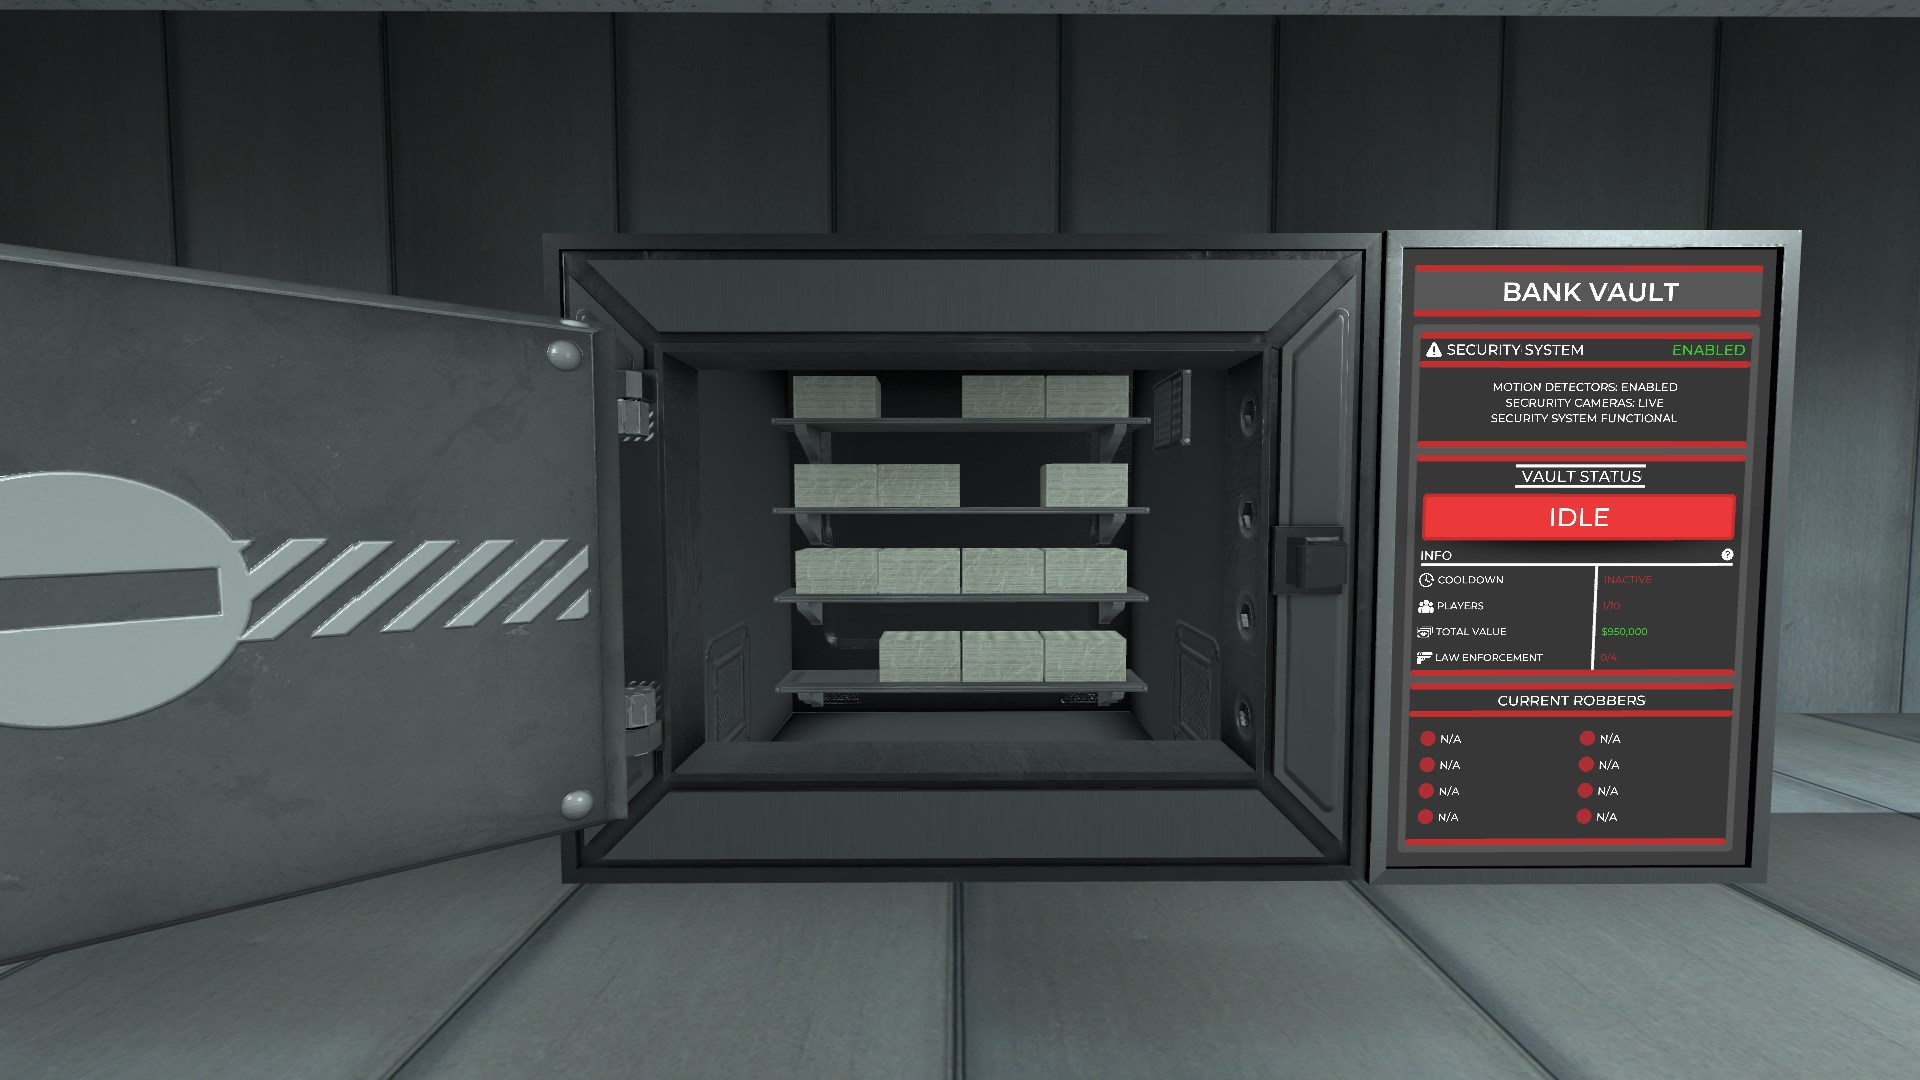 Opened vault (includes animation)